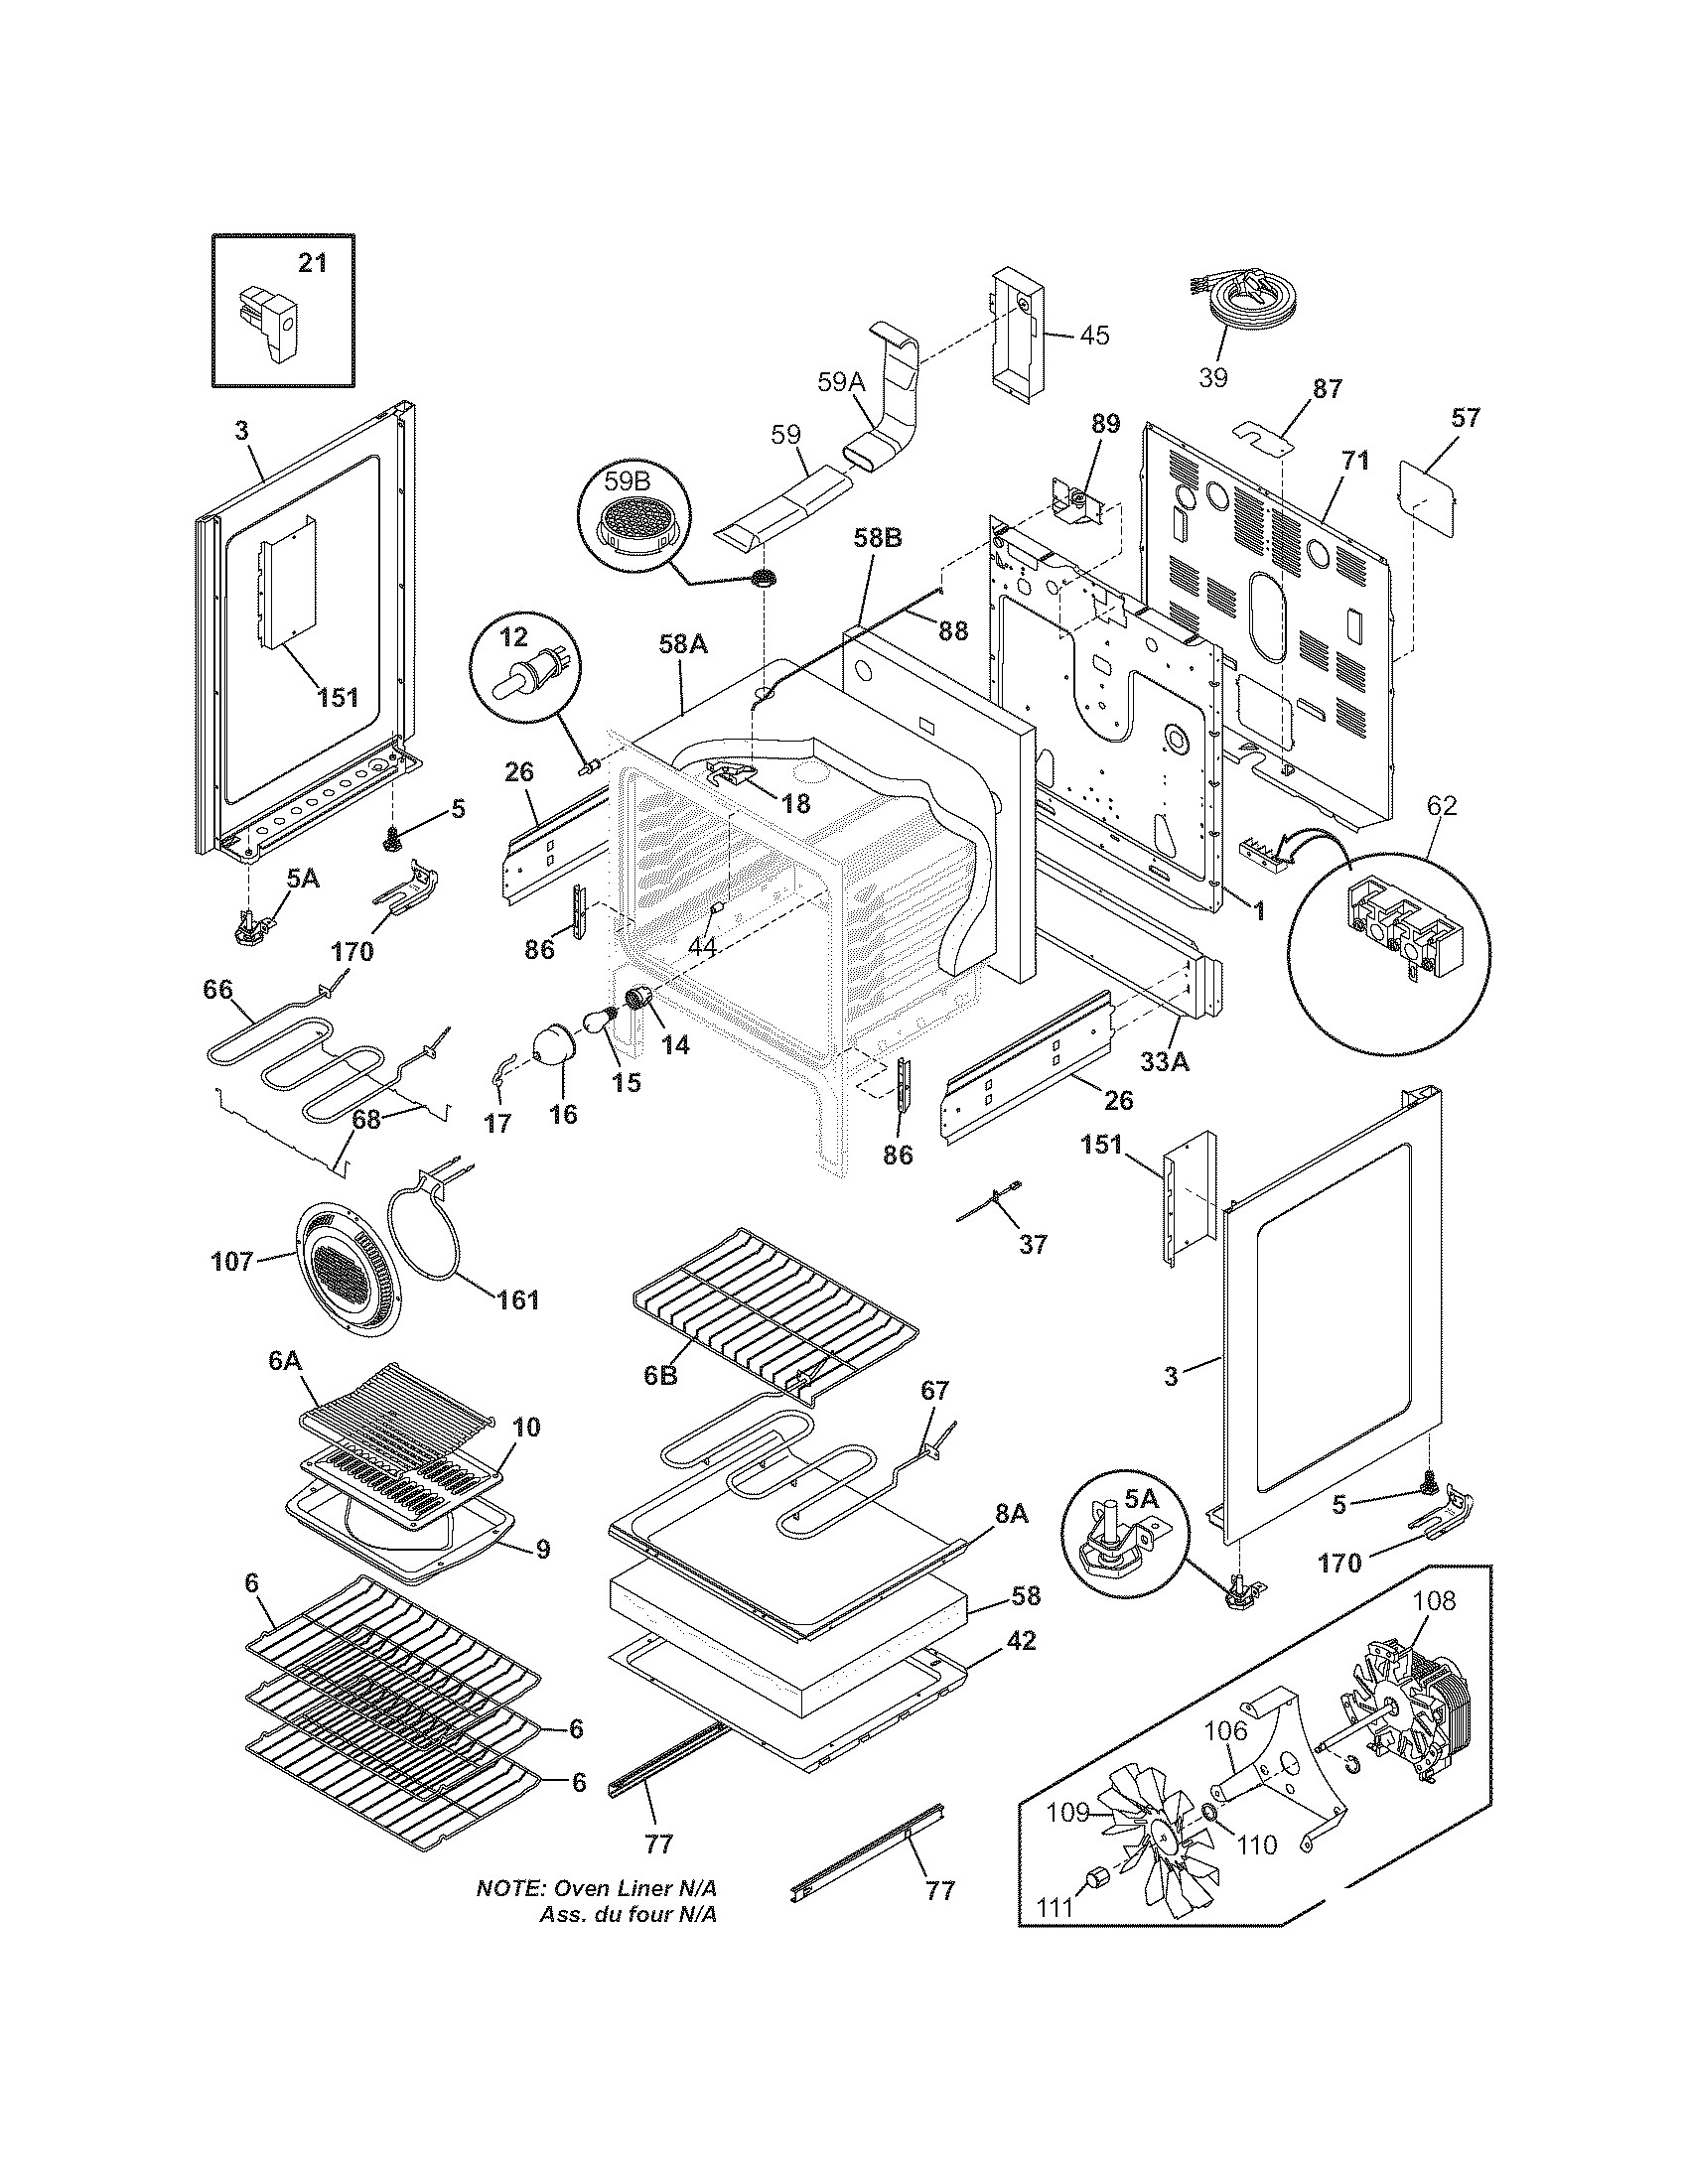 Frigidaire gallery refrigerator parts diagram stunning frigidaire frigidaire gallery refrigerator parts diagram stunning frigidaire wiring diagram gallery everything you need to asfbconference2016 Choice Image